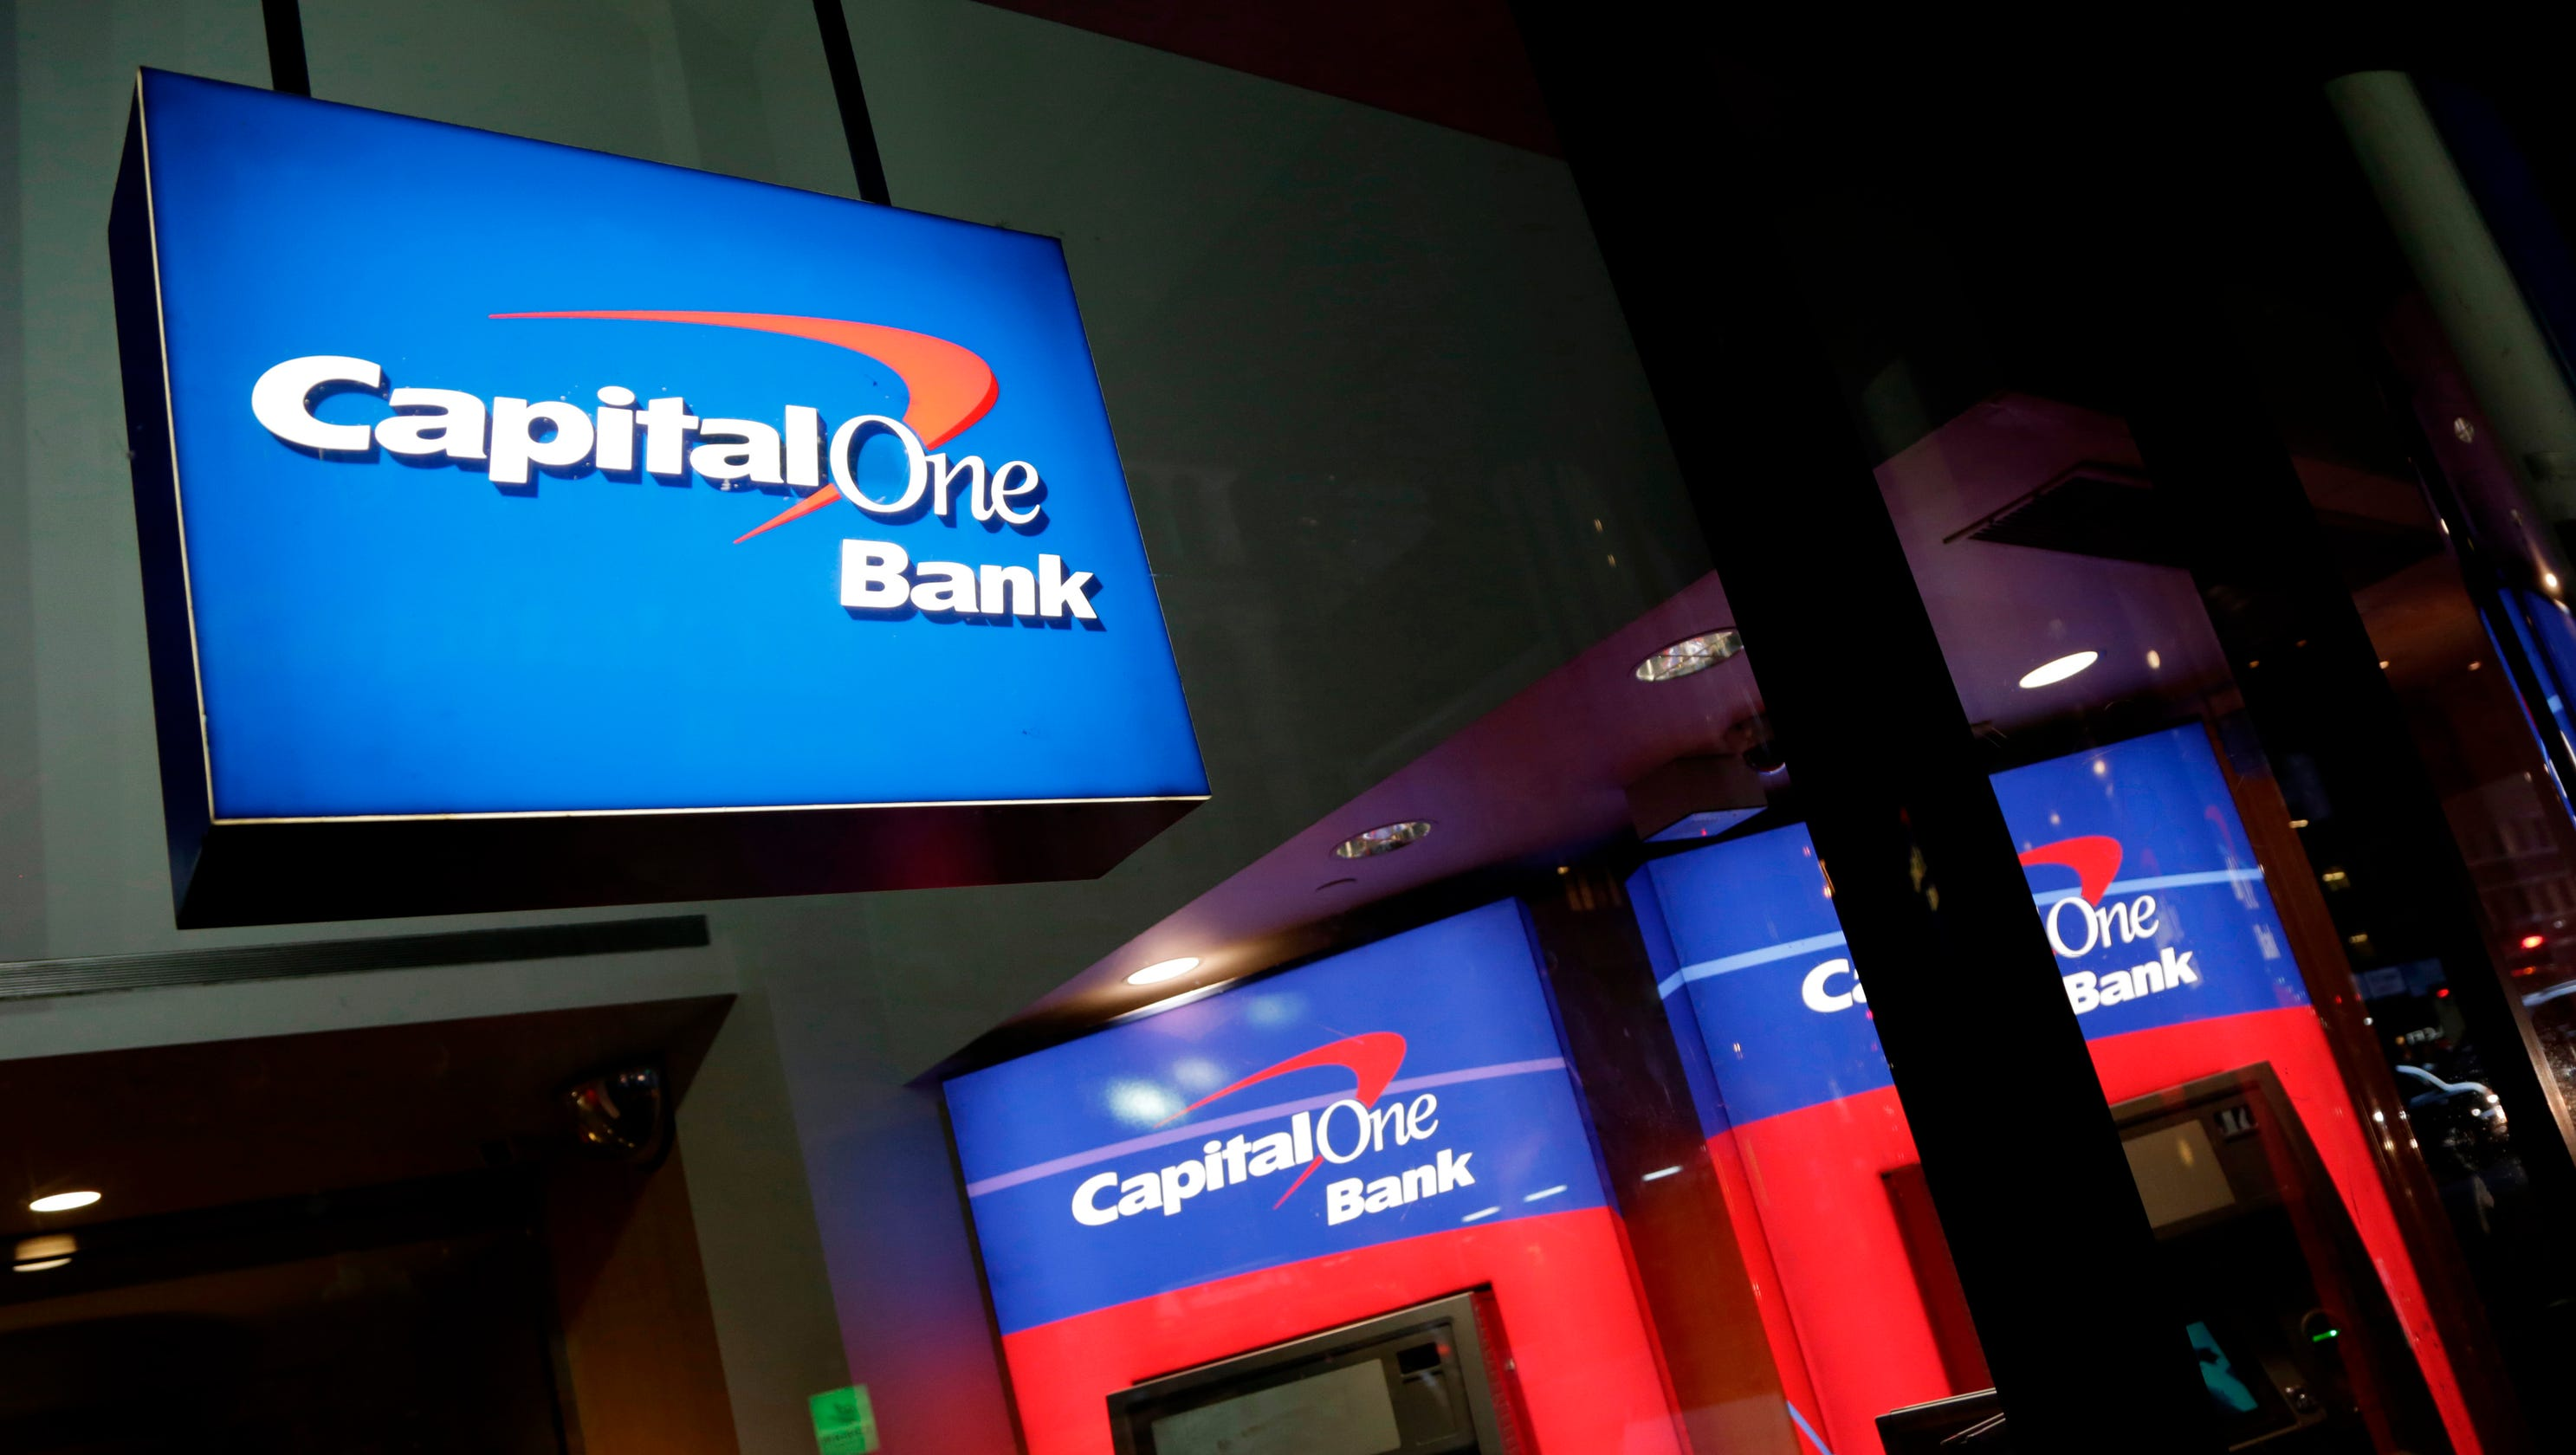 Capital One data breach 2019: Millions affected in new breach